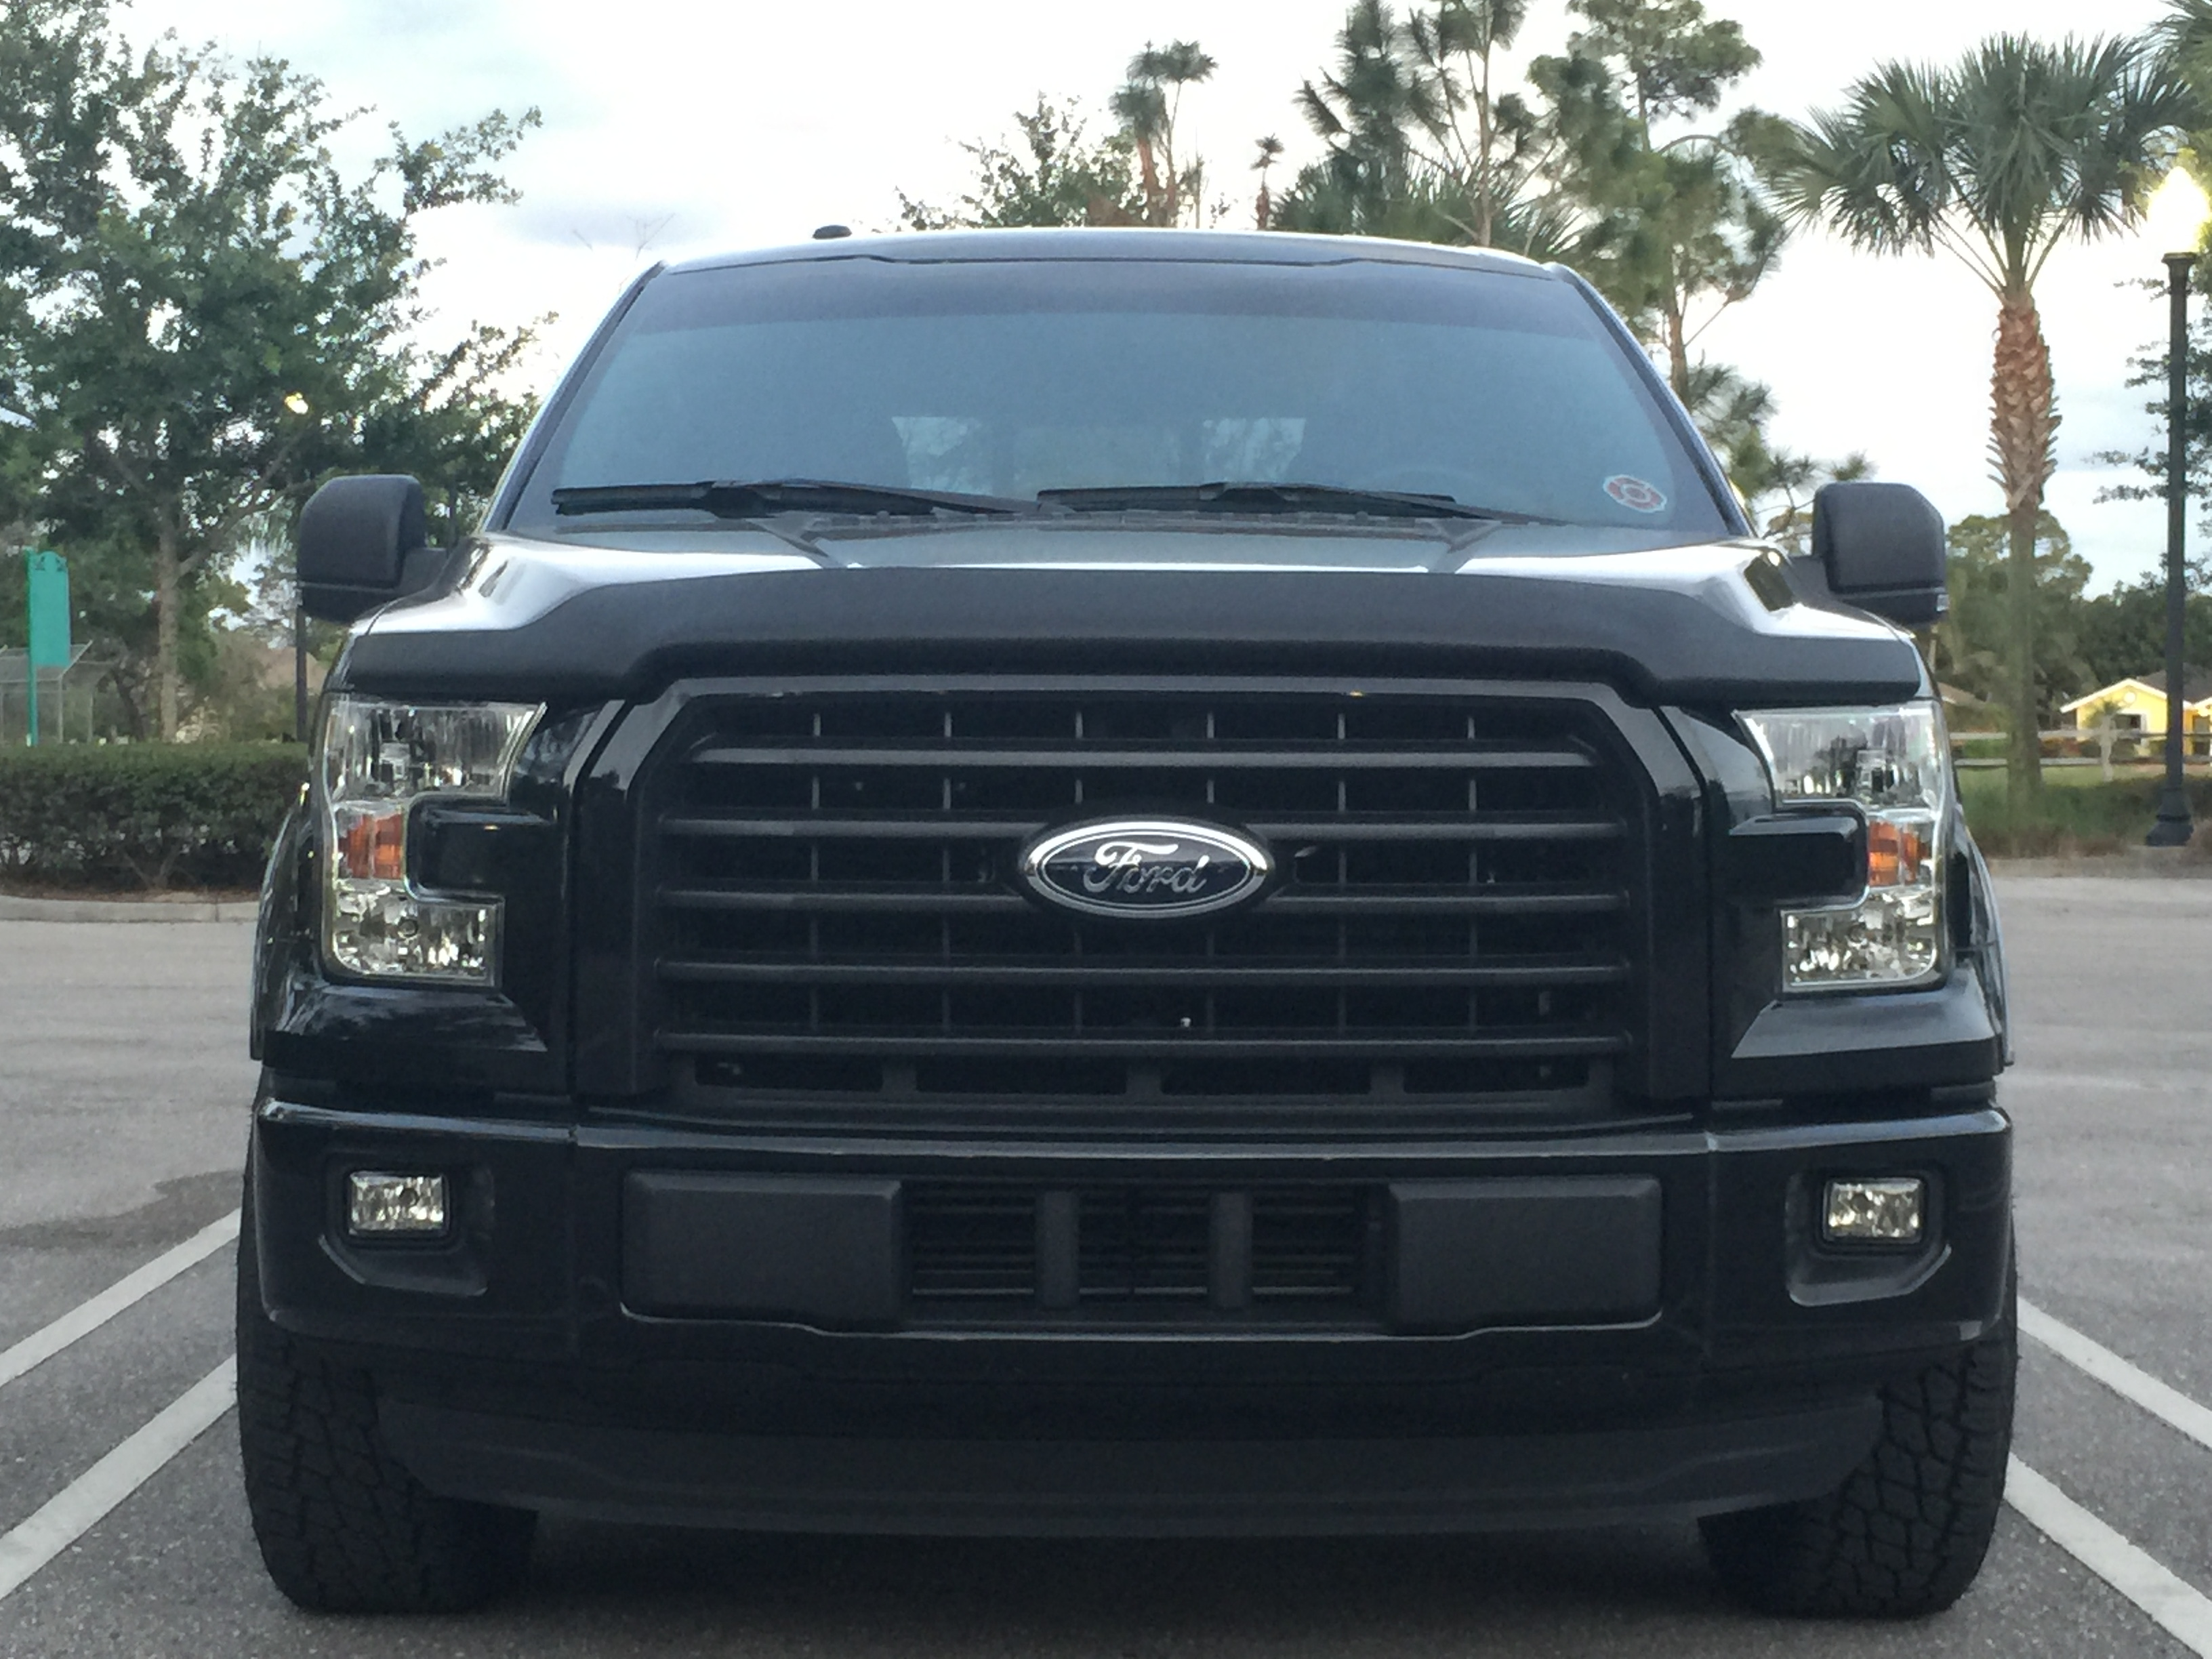 2010 F150 Custom >> Ideal Offset for after market wheels 18x9 and 20x9